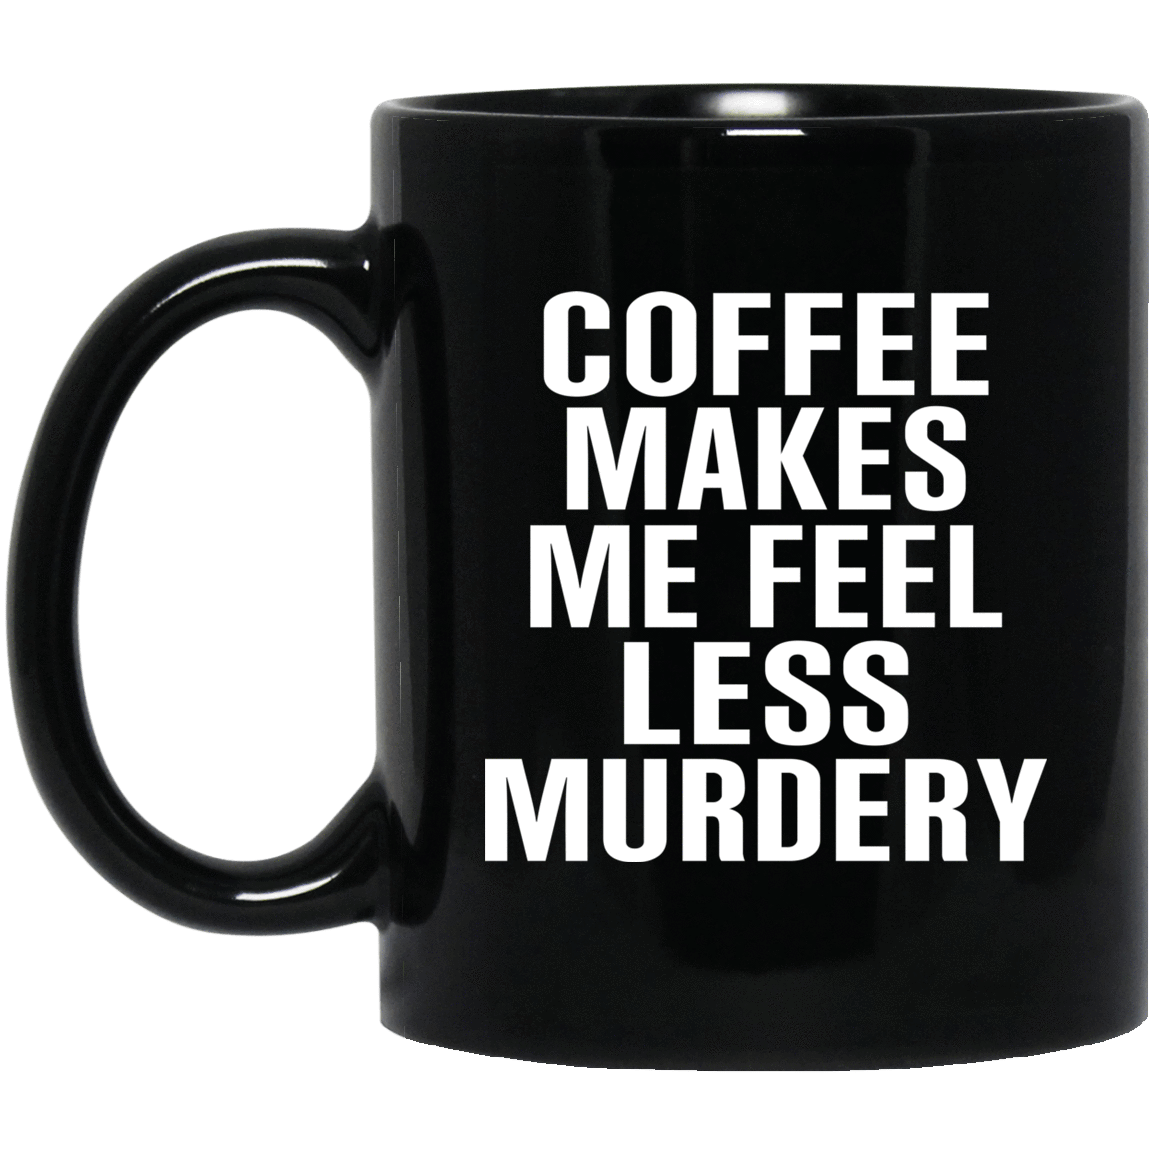 Coffee Makes Me Feel Less Murdery Mug 1065-10181-72744266-49307 - Tee Ript